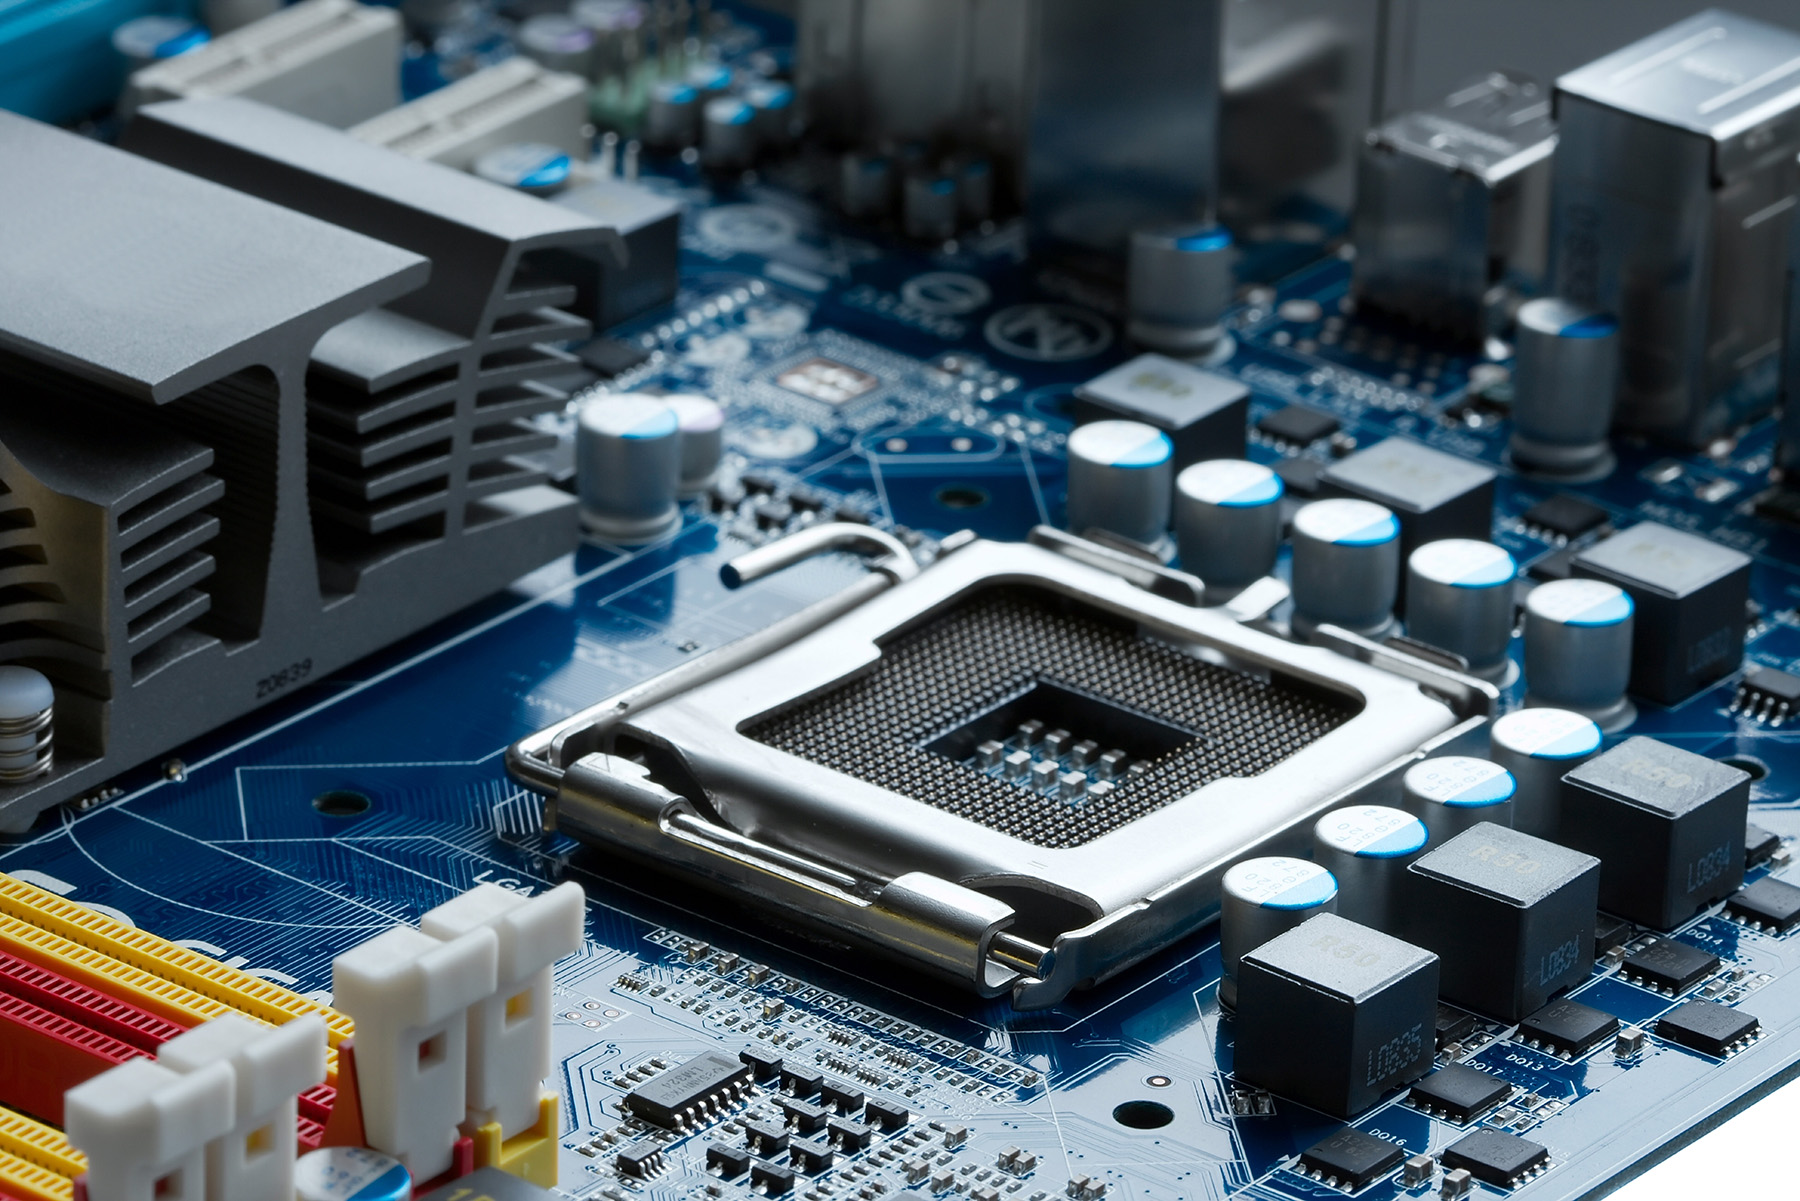 Capacitors and other components on the motherboard 51229